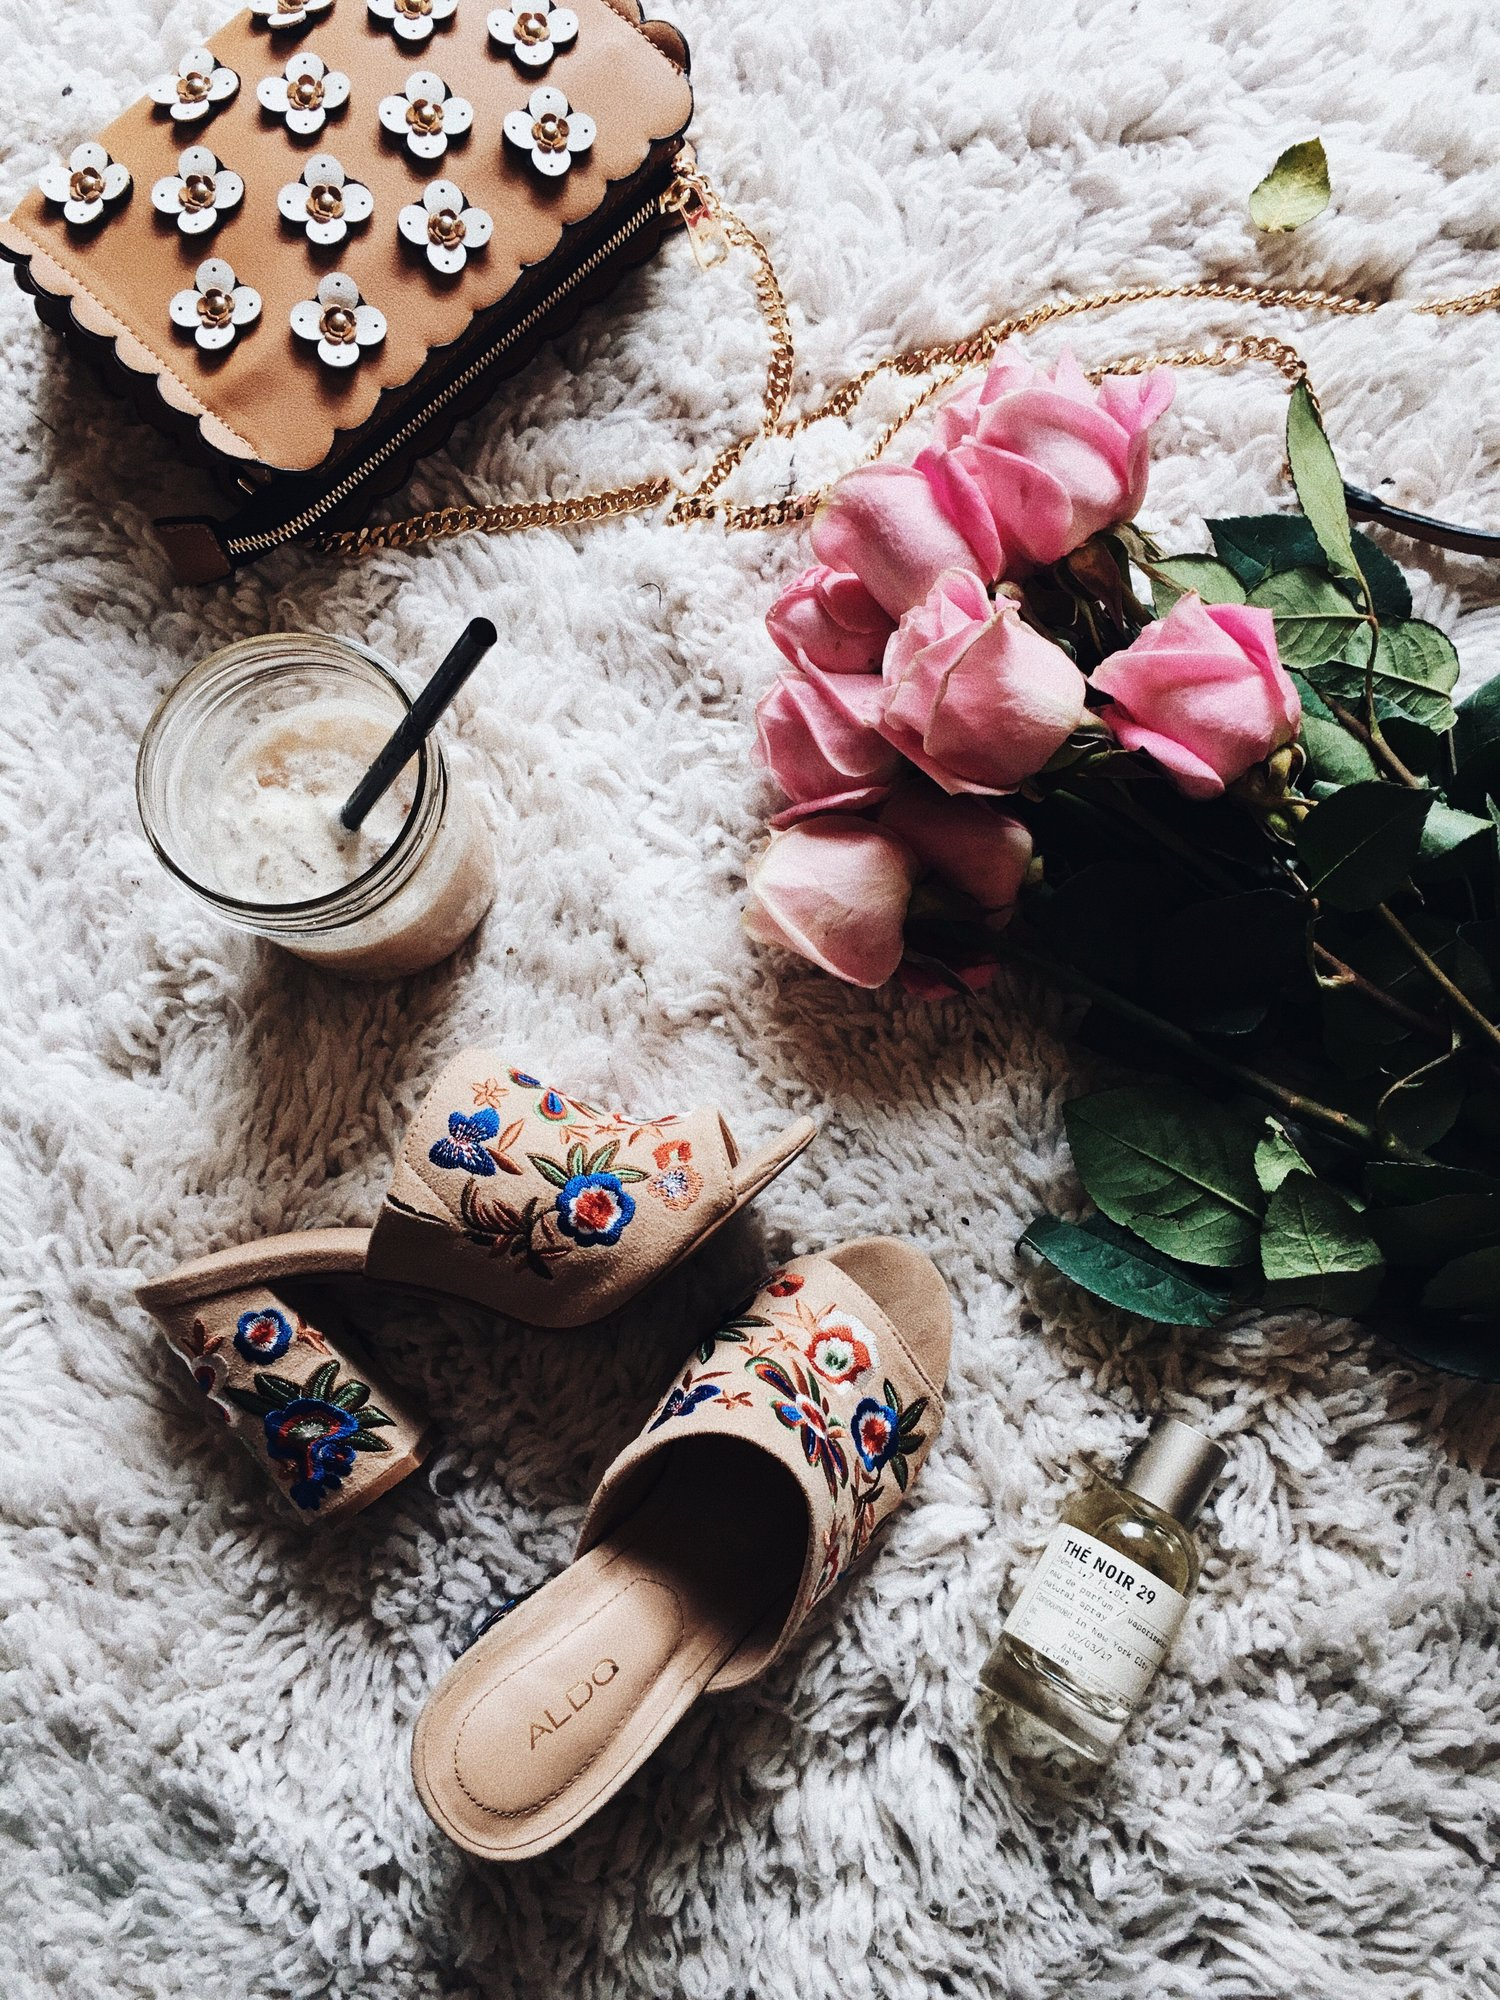 bbd1534f989c TuesdayShoesday  Embroidered Shoes You Want Right Now — AikA s Love ...